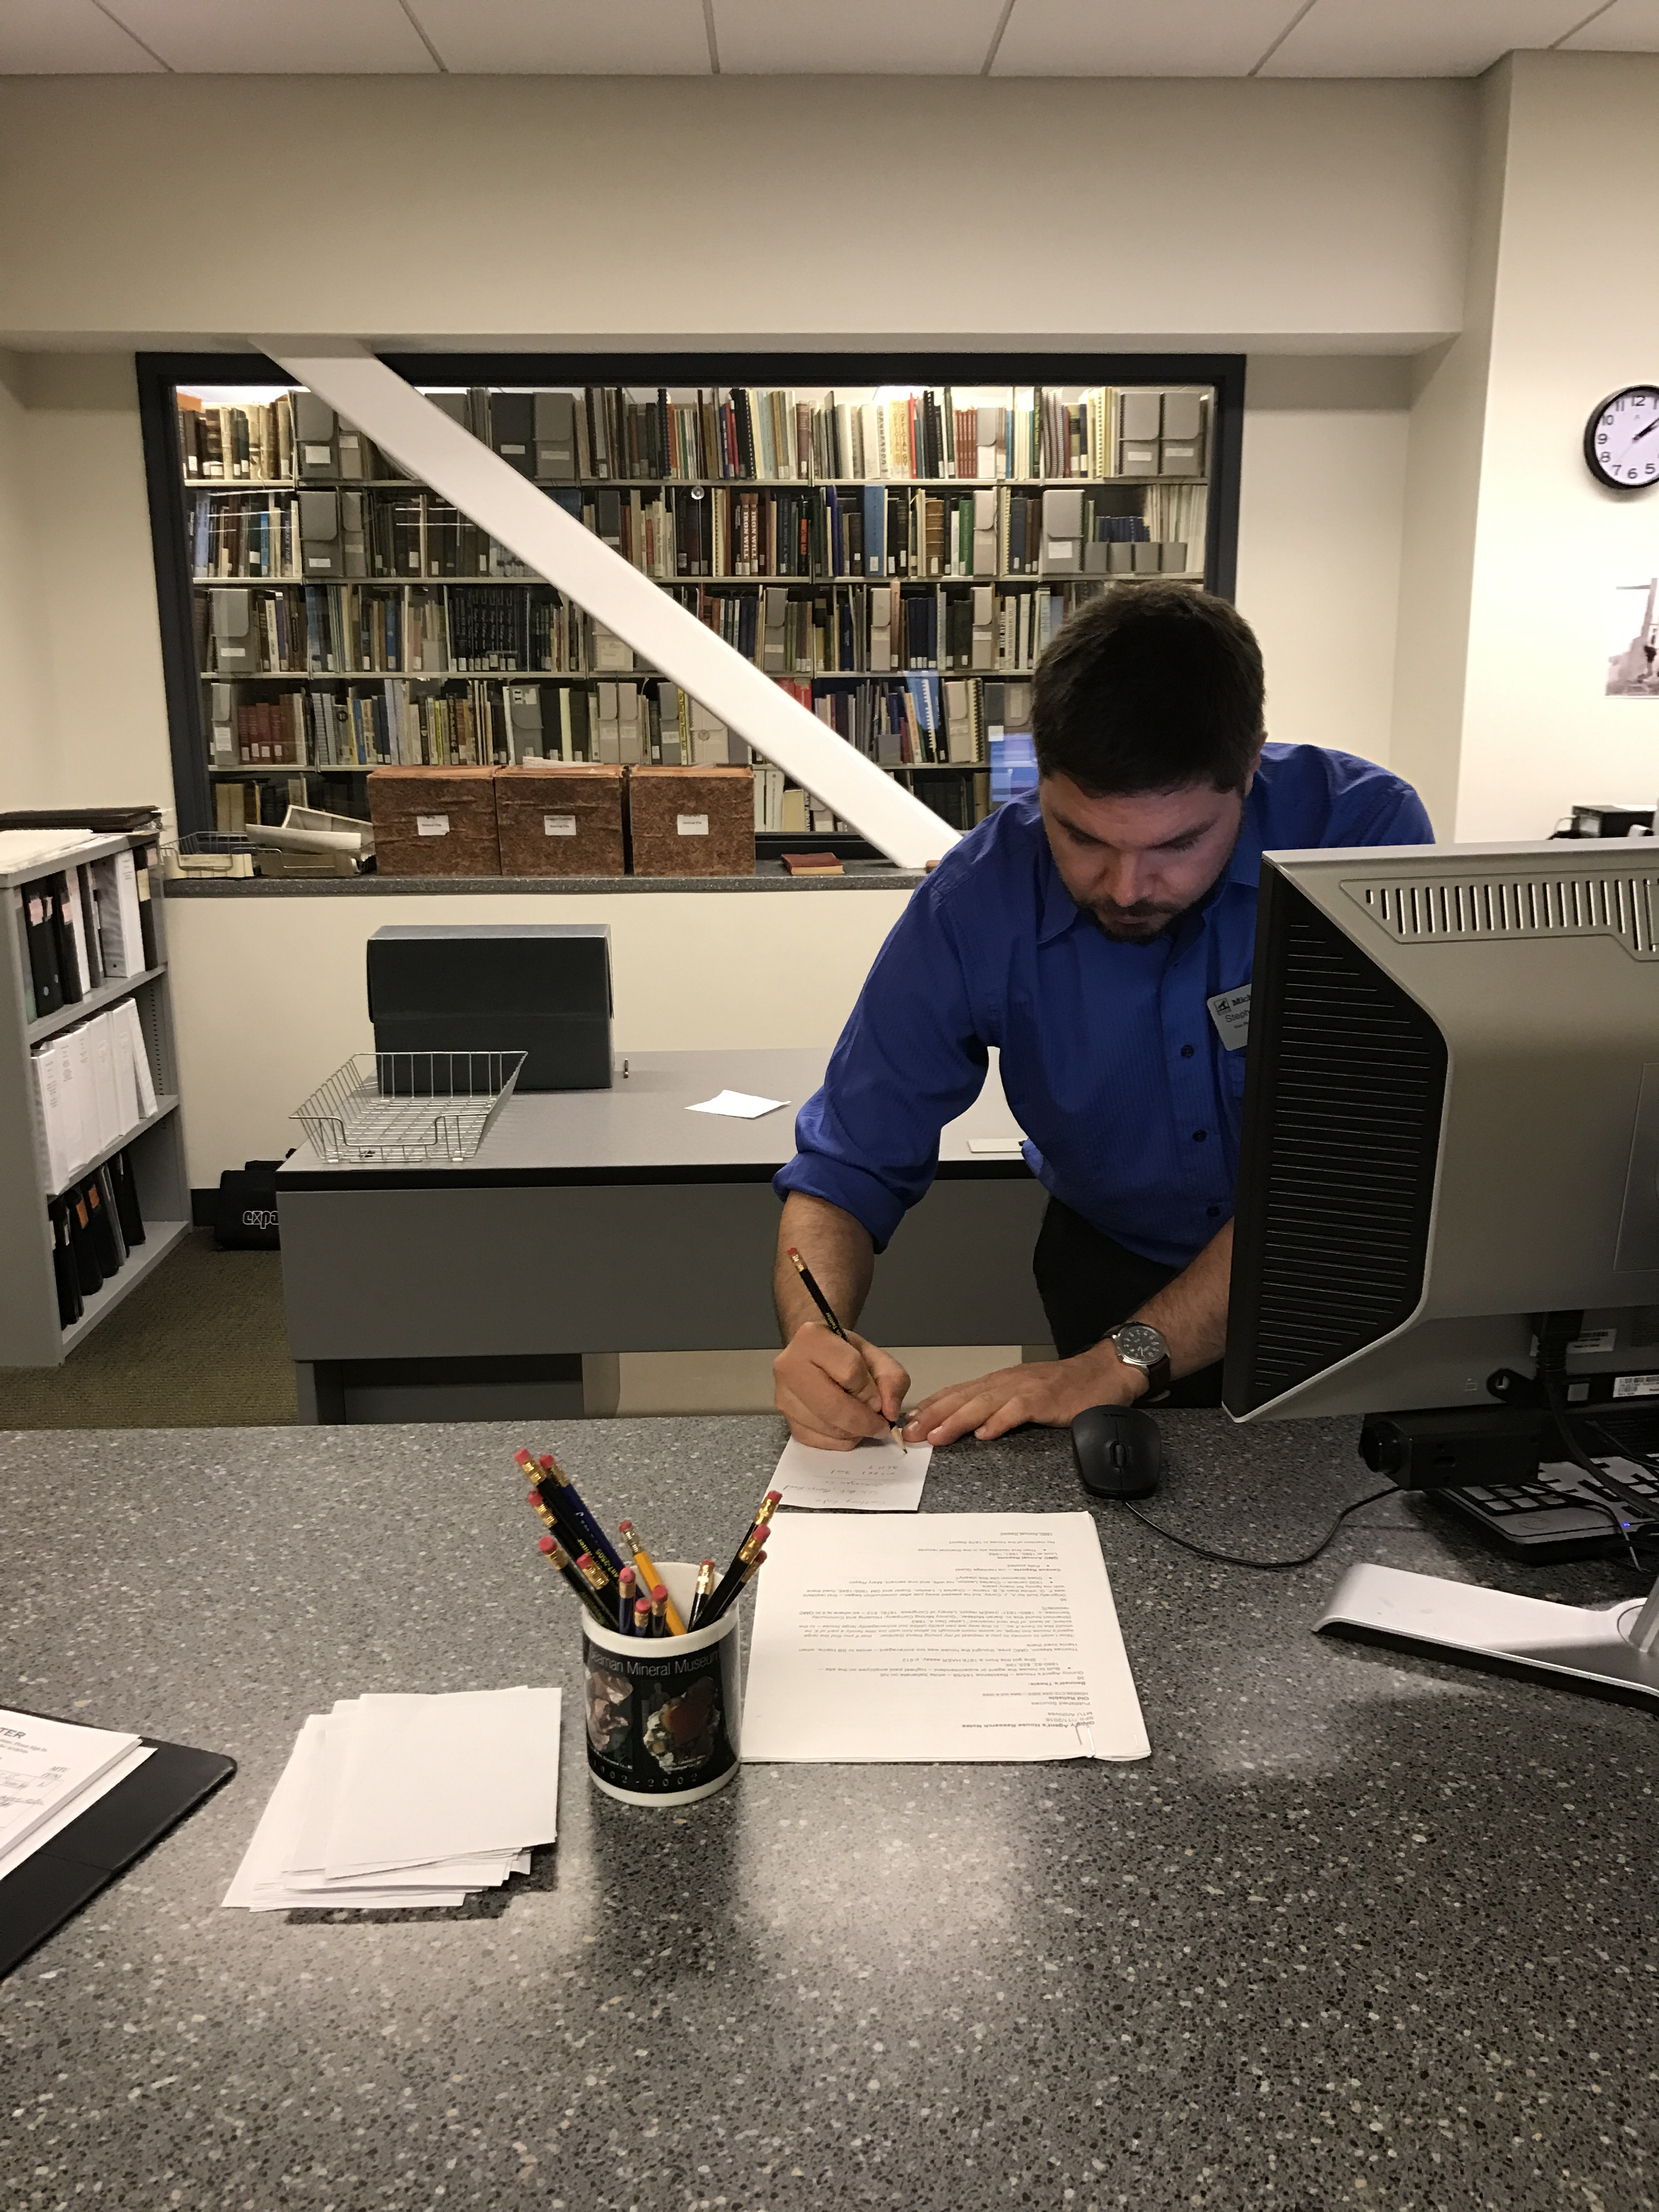 Steve Is Hard At Work Assisting A Patron With Some Genealogical Research